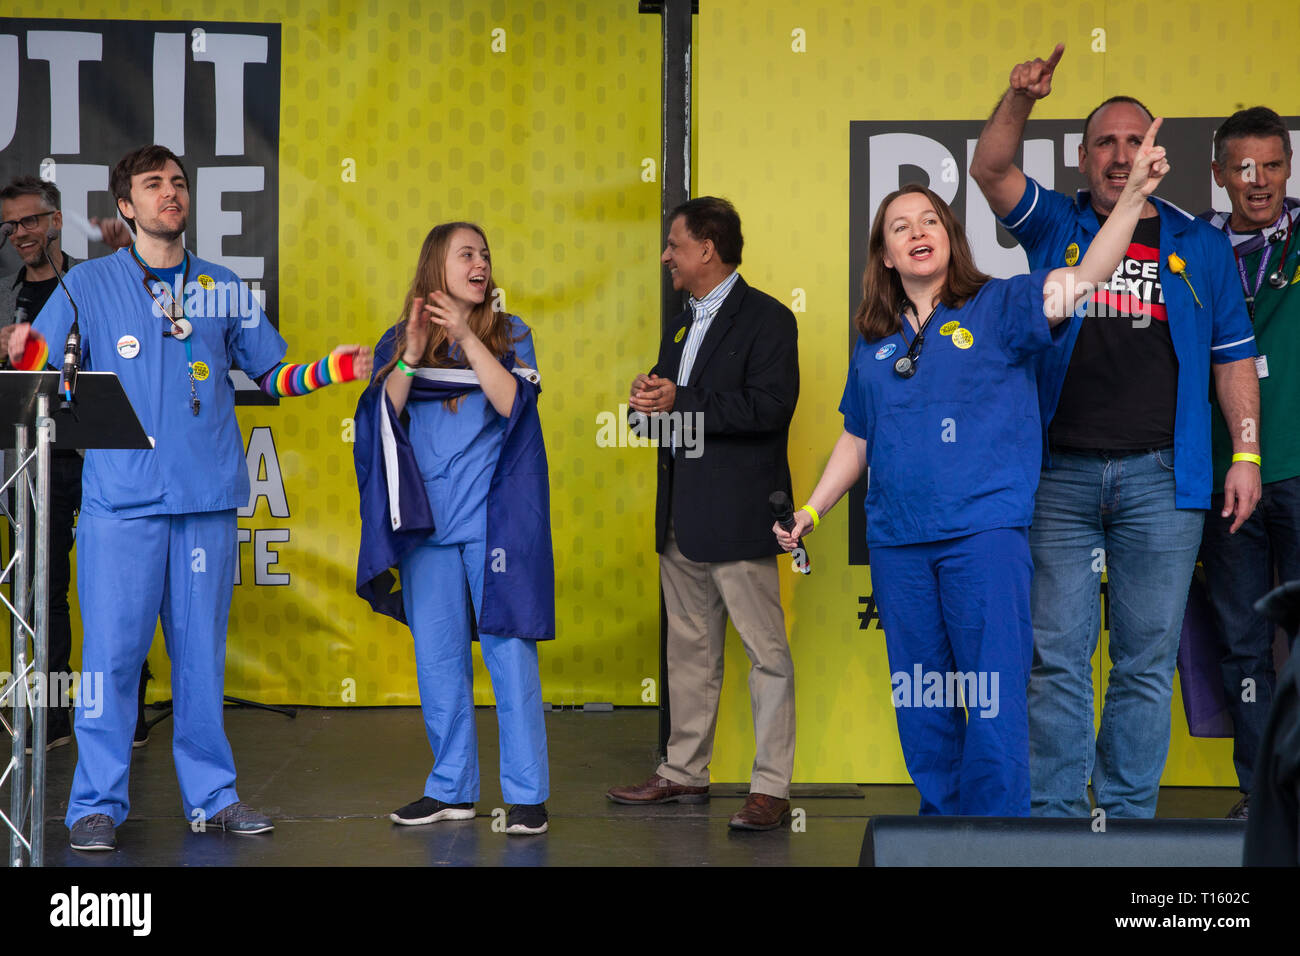 London, UK. 23rd March, 2019. National Health Service workers wave to the crowd after addressing a million people taking part in a People's Vote rally in Parliament Square following a march from Park Lane. Credit: Mark Kerrison/Alamy Live News - Stock Image